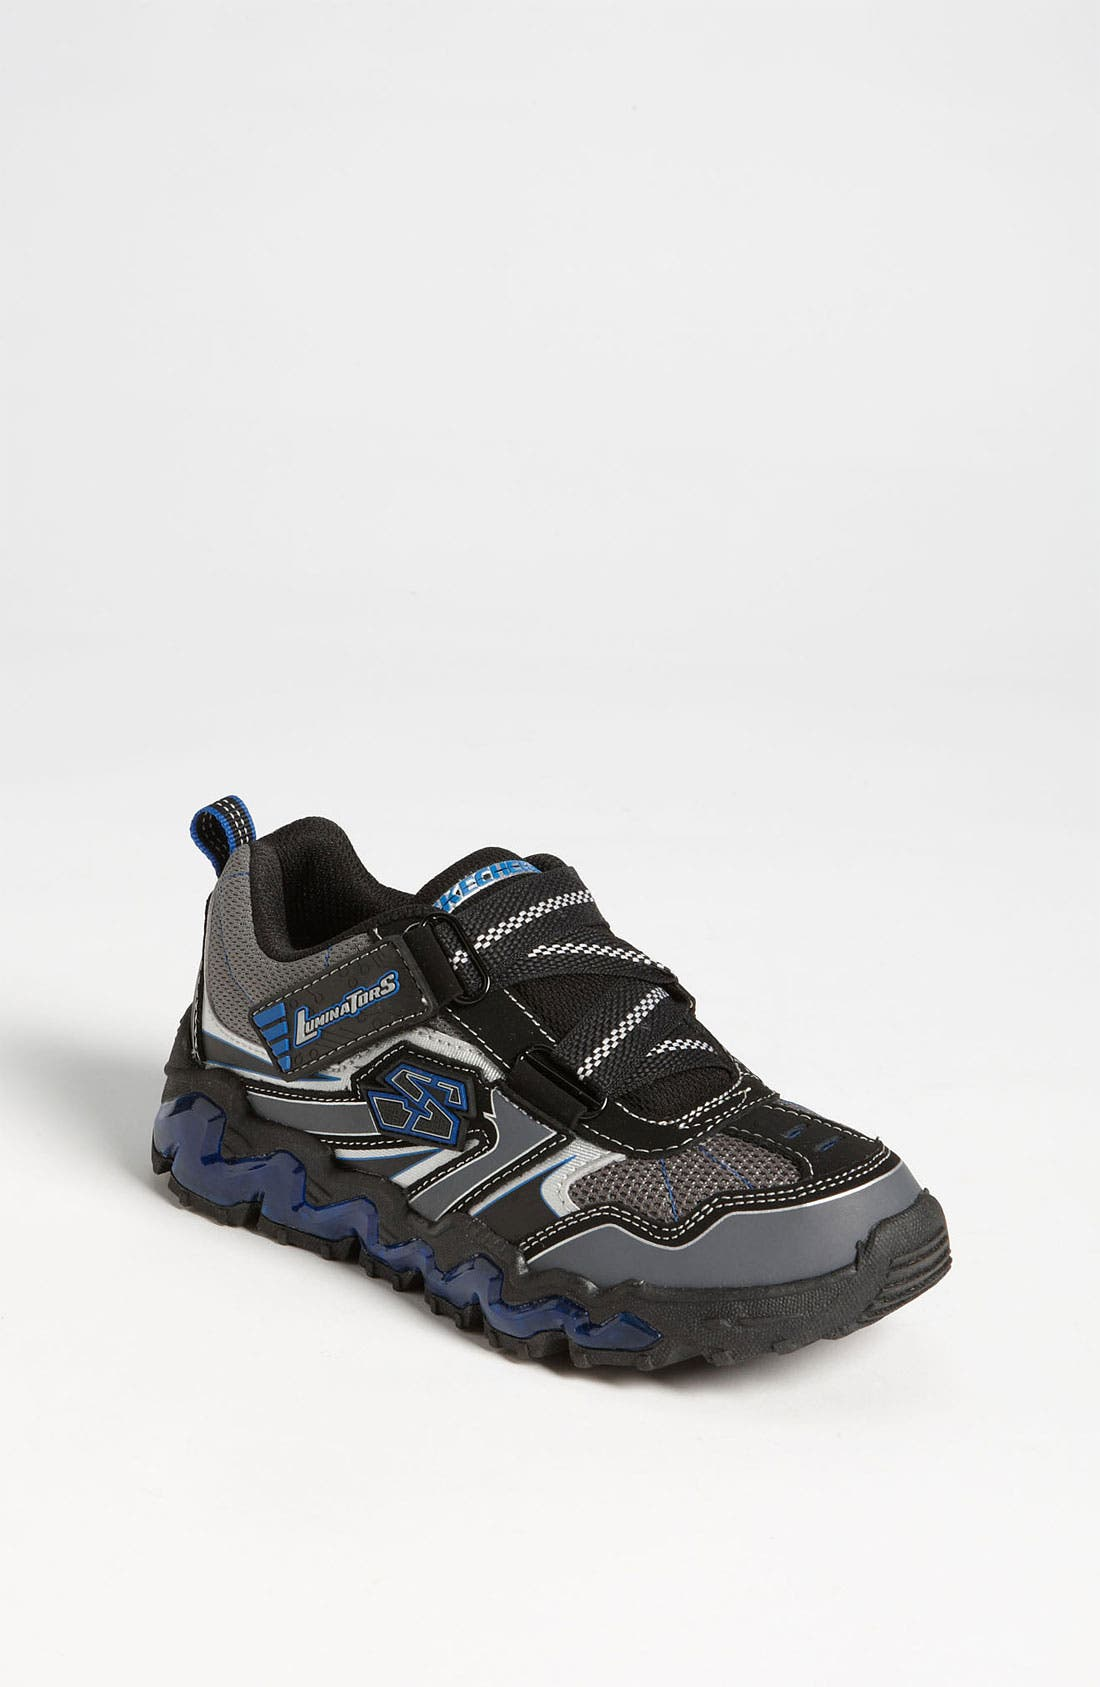 Main Image - SKECHERS 'Nova Wave' Light-Up Sneaker (Toddler & Little Kid)